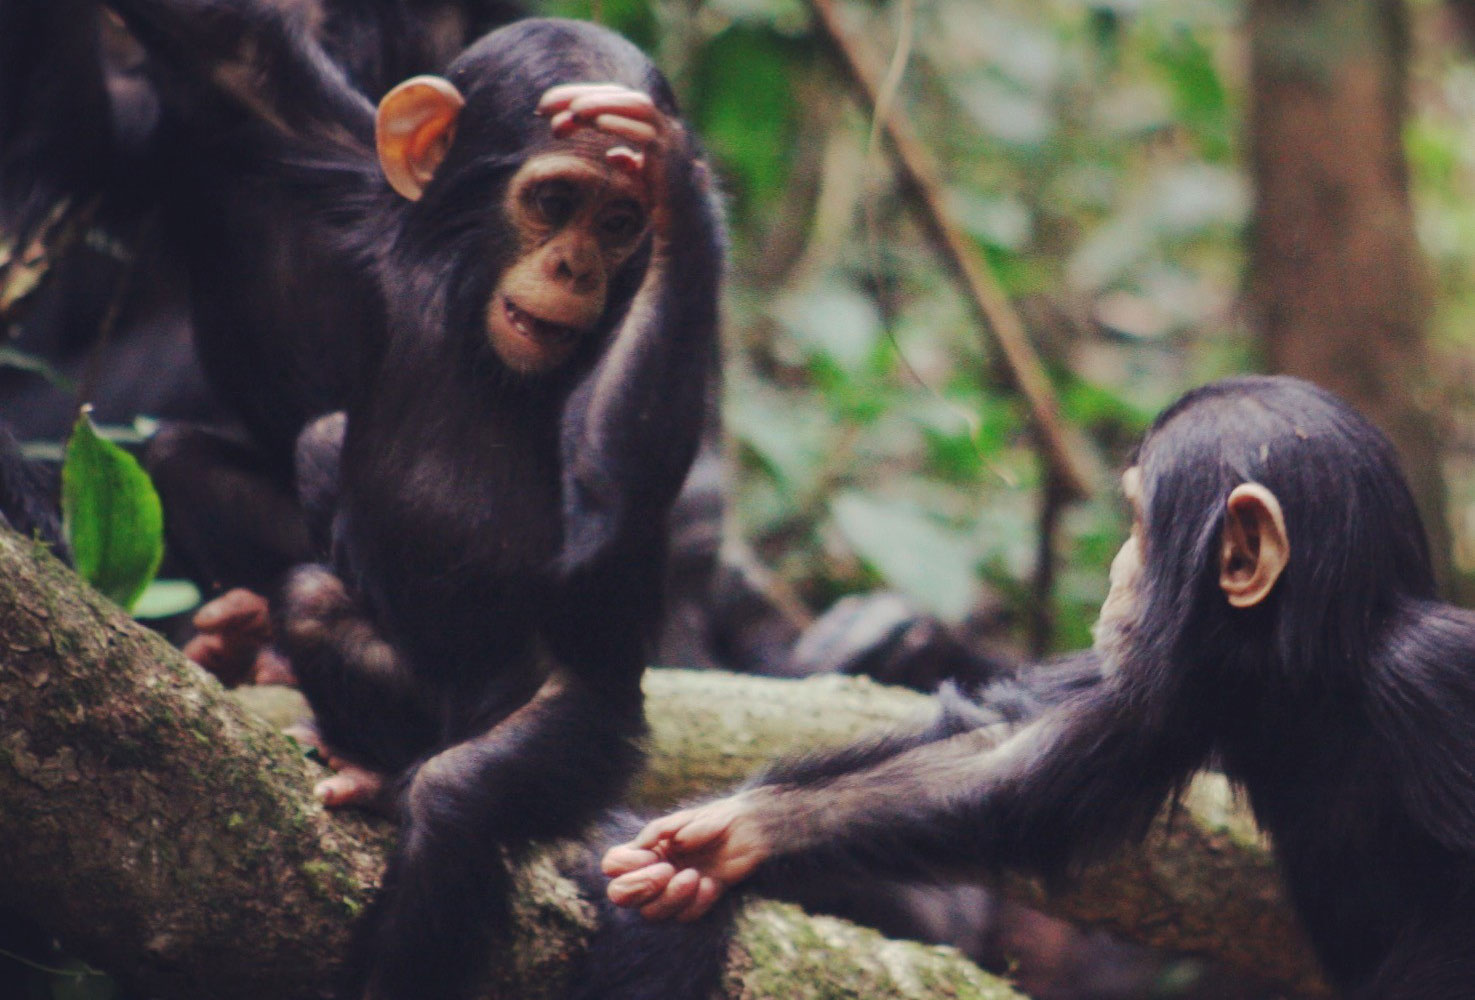 Image - Chimpanzee gestures follow the same laws as human language